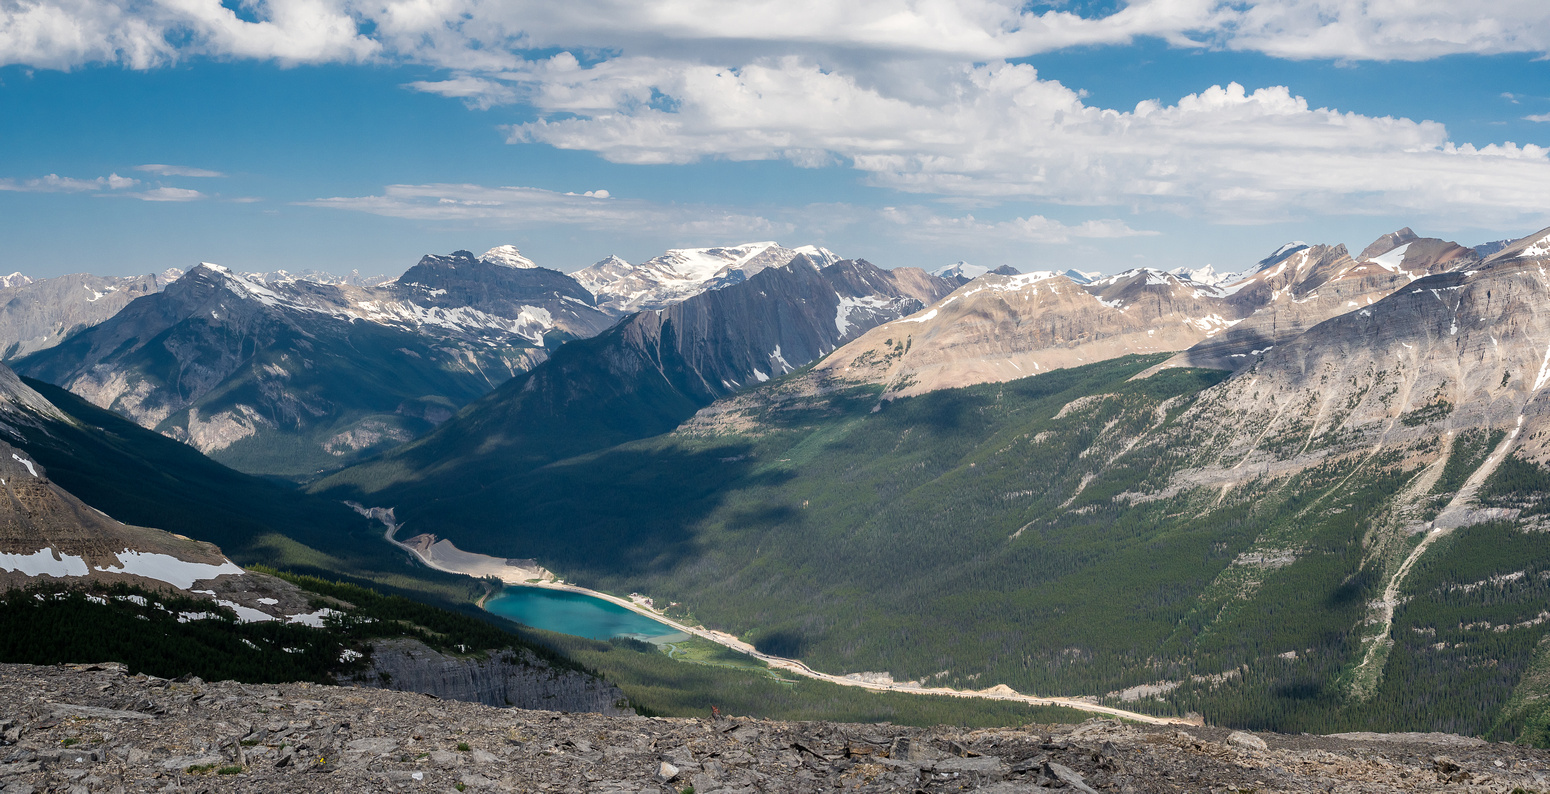 Looking over Wapta Lake towards Field, Wapta, Carnarvon, Ogden and many other Yoho peaks.